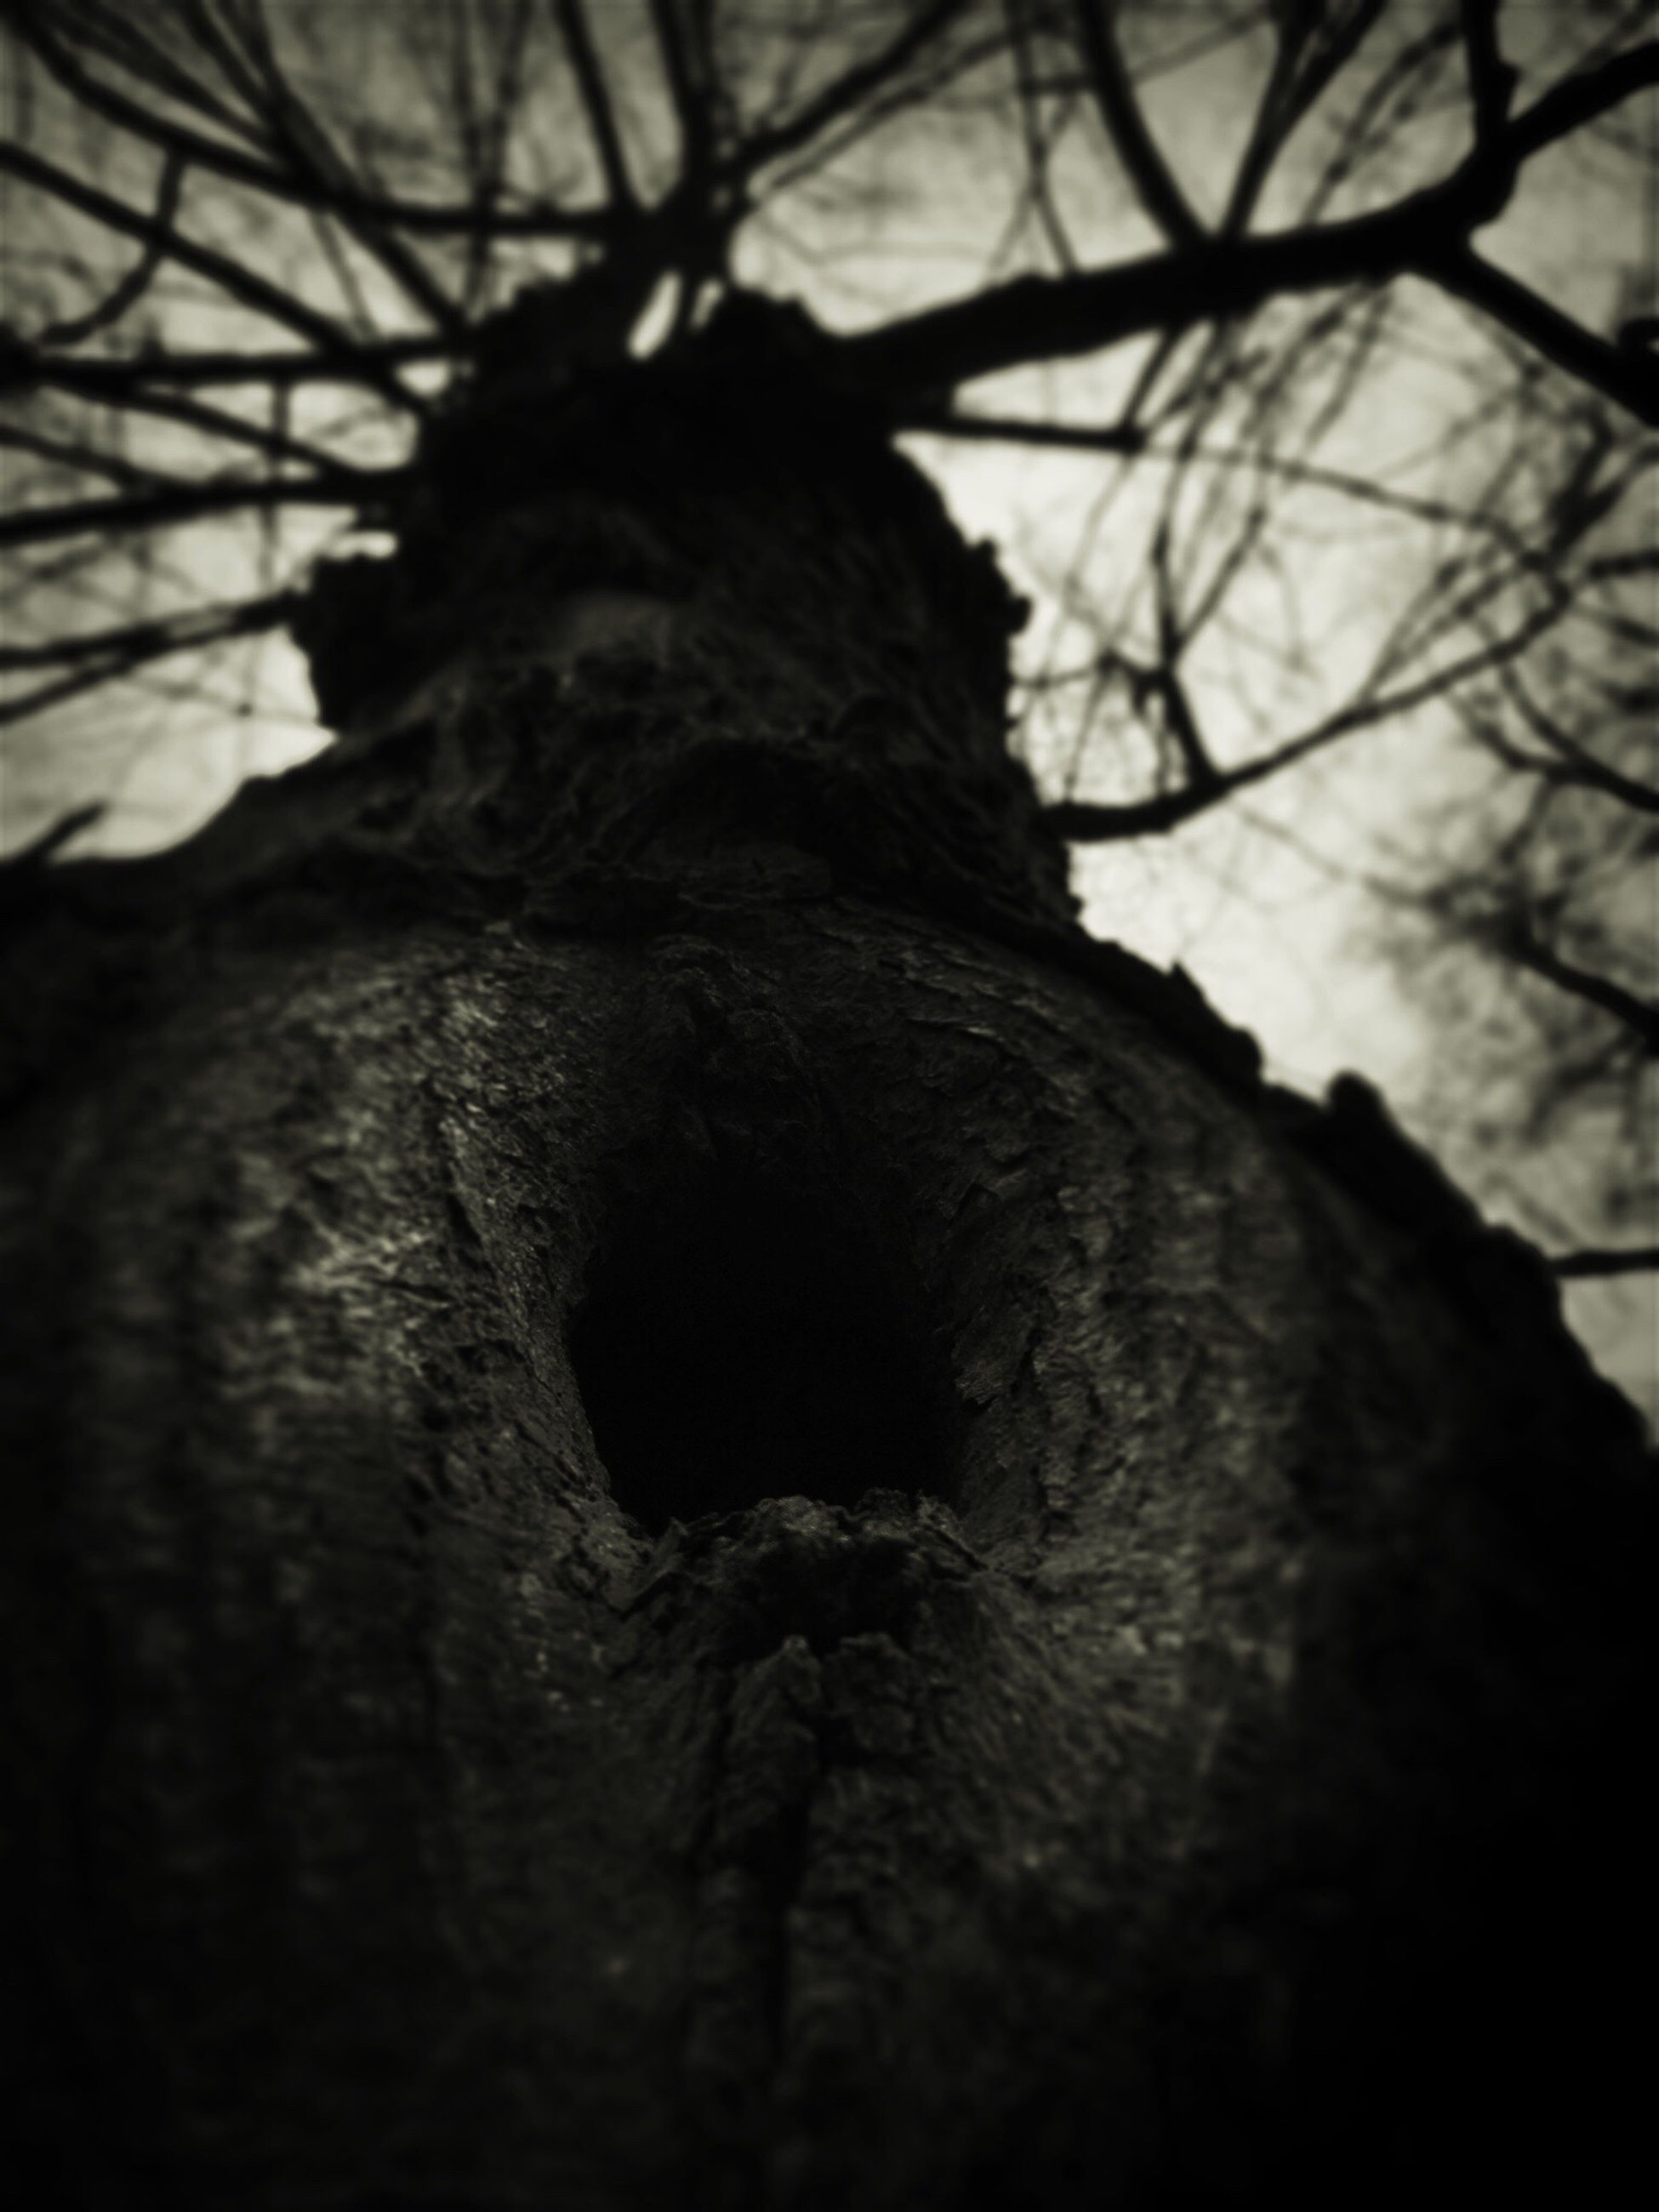 tree, close-up, low angle view, nature, textured, branch, tree trunk, no people, outdoors, focus on foreground, sky, day, tranquility, rough, selective focus, bark, growth, natural pattern, beauty in nature, part of